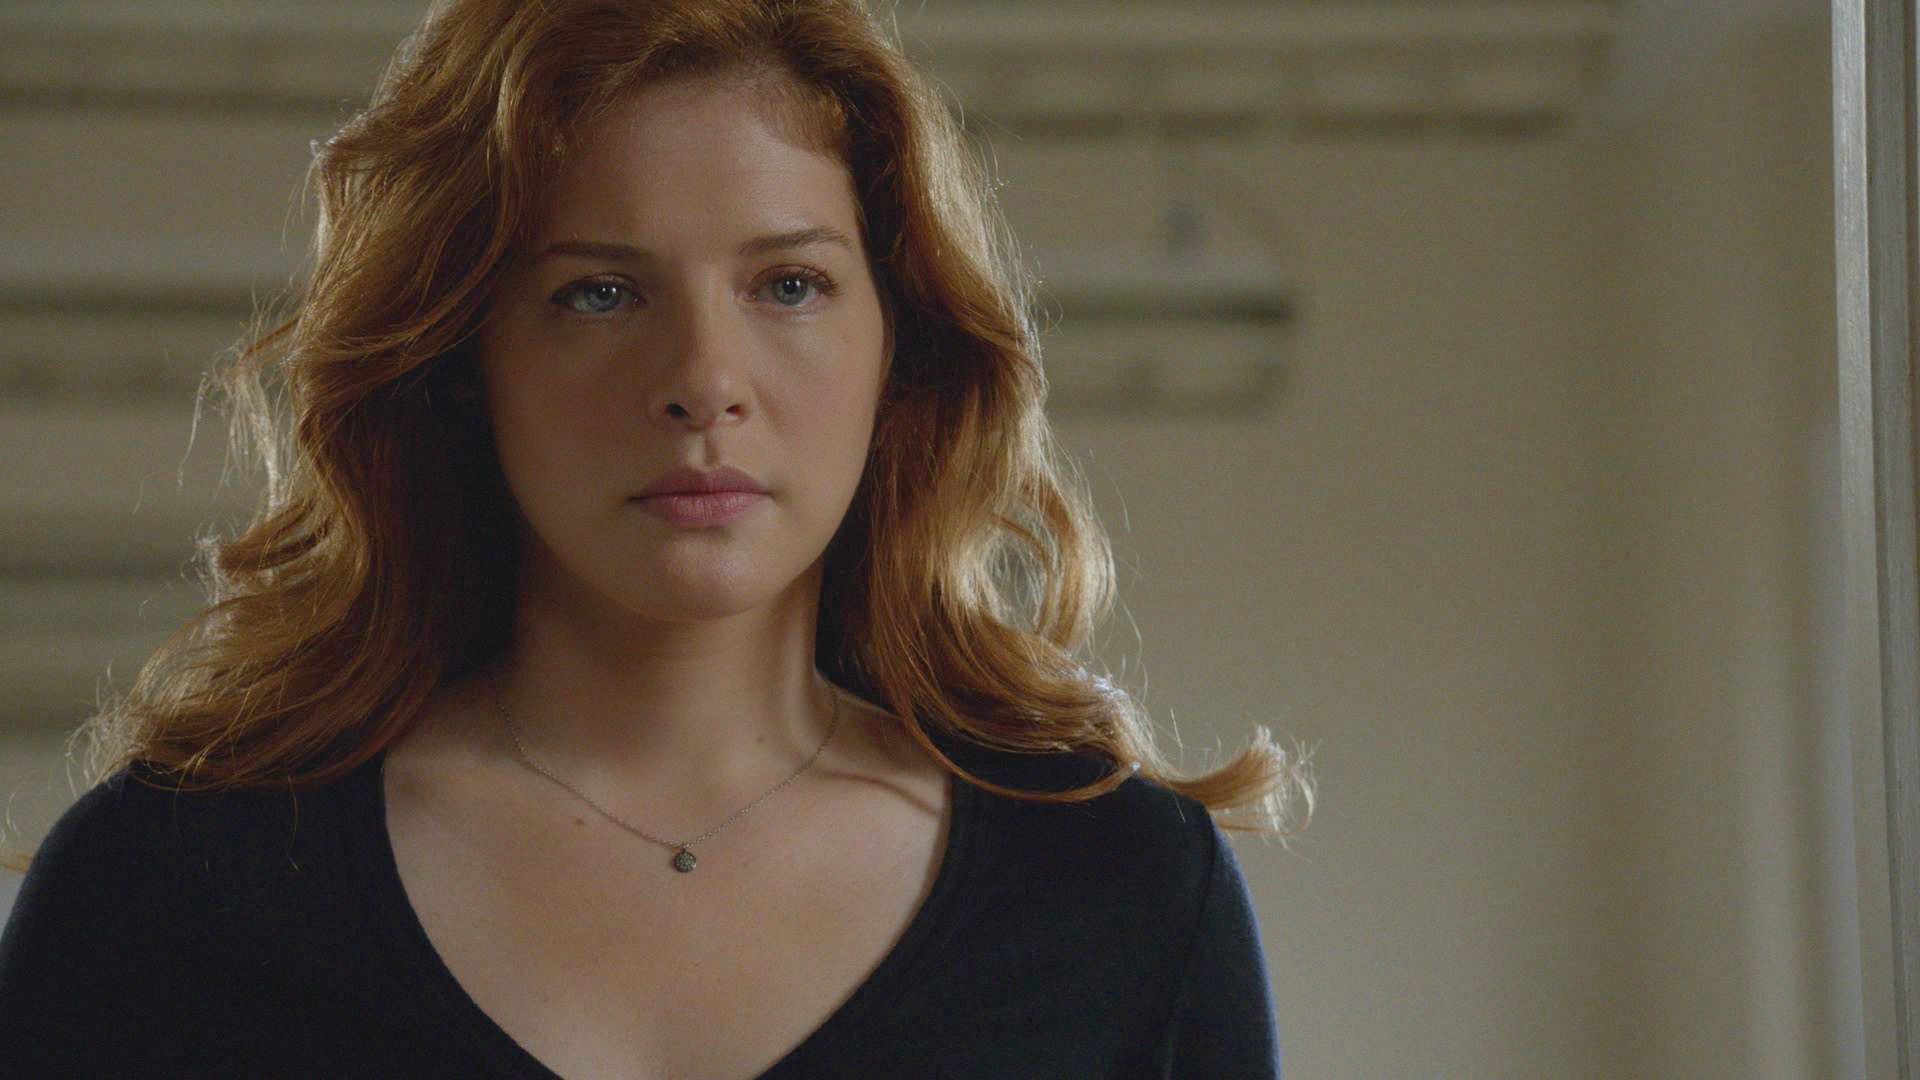 14. Rachelle Lefevre is an avid animal rights activist and environmentalist.